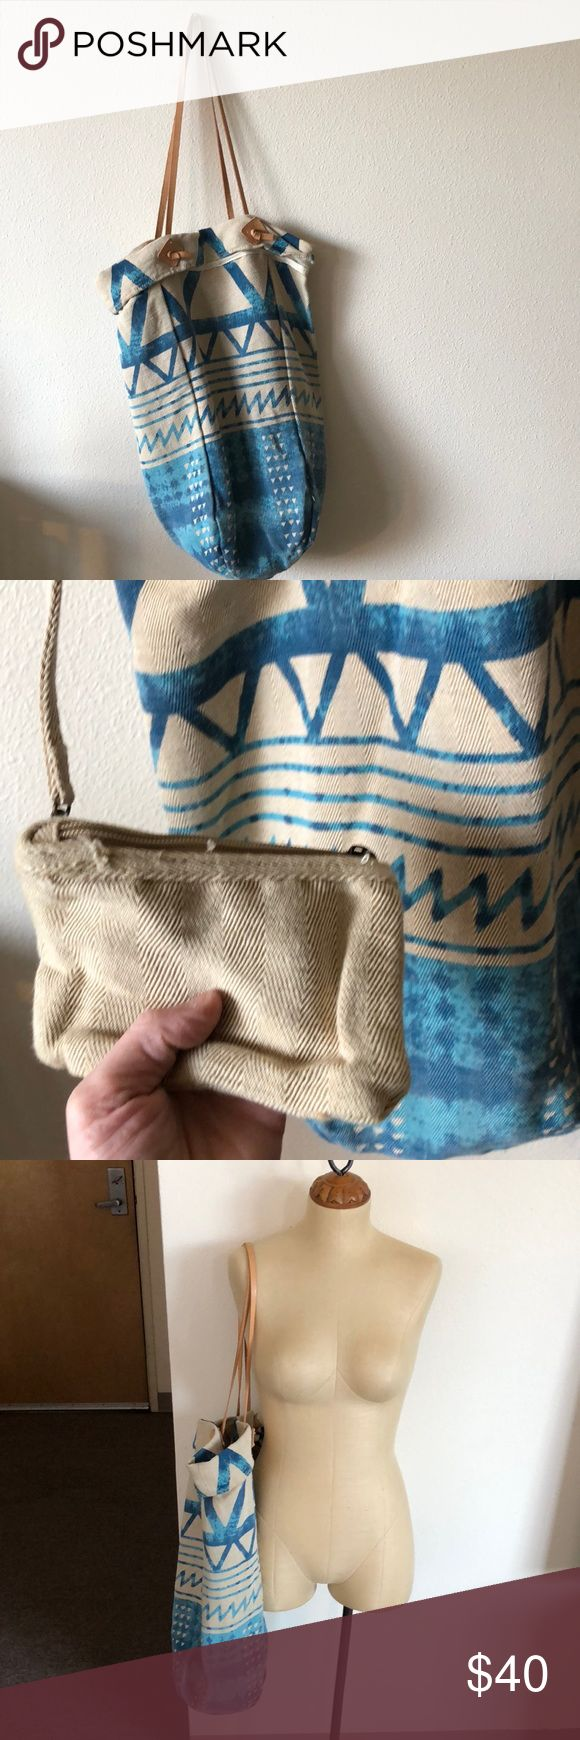 Free People Aztec bucket bag Free People linen bucket bag with bright blue Aztec print and leather straps. Features a small coin purse attached as well. Brand new without tags. Great condition! Free People Bags Shoulder Bags